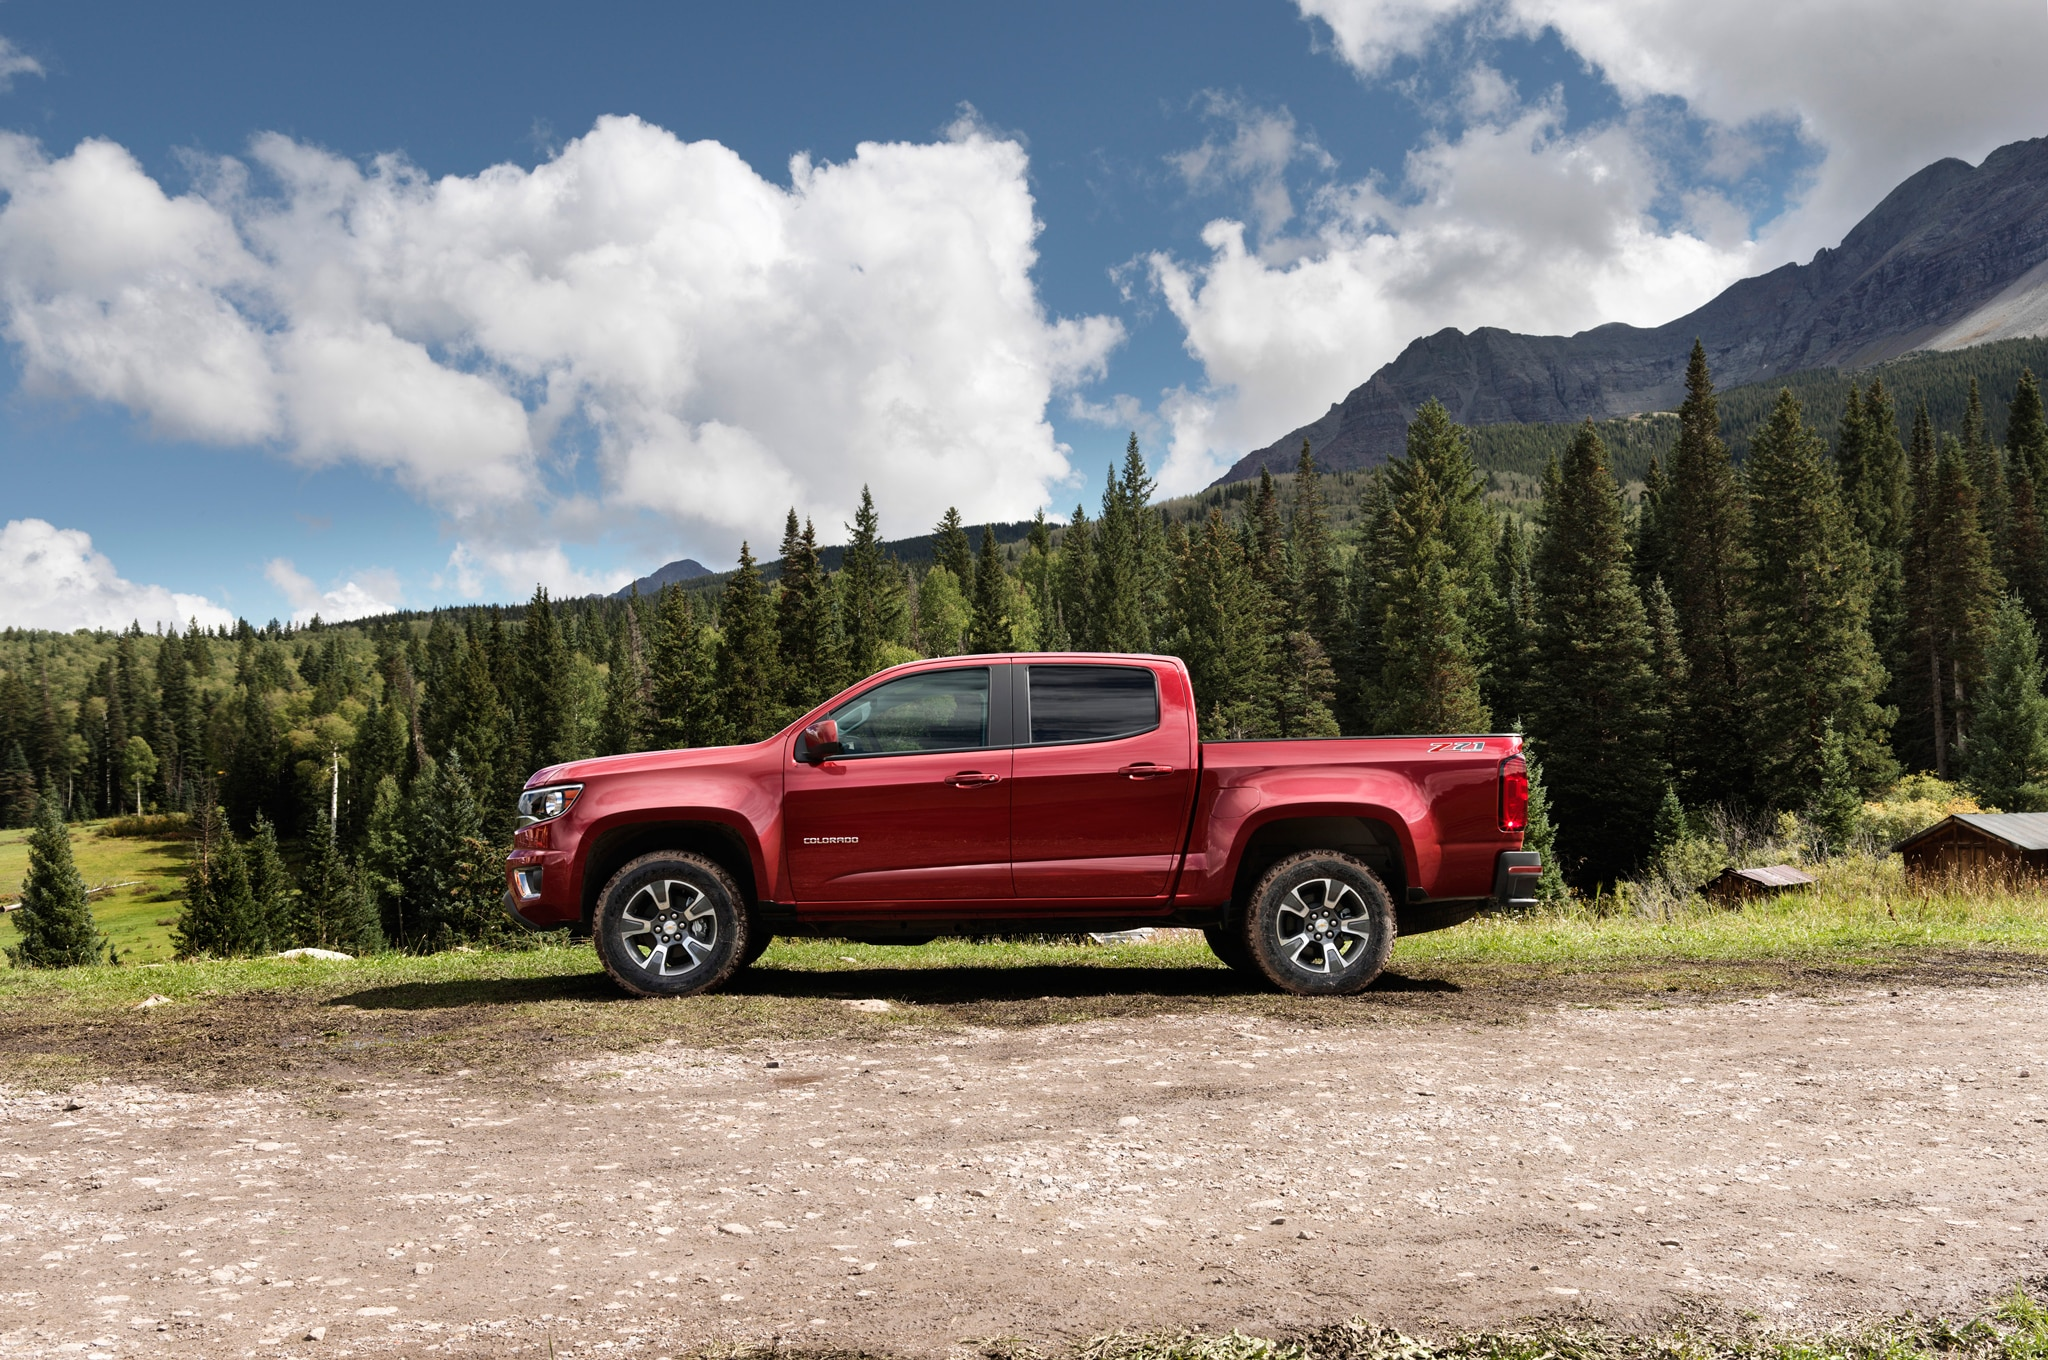 2015 Chevrolet Colorado side